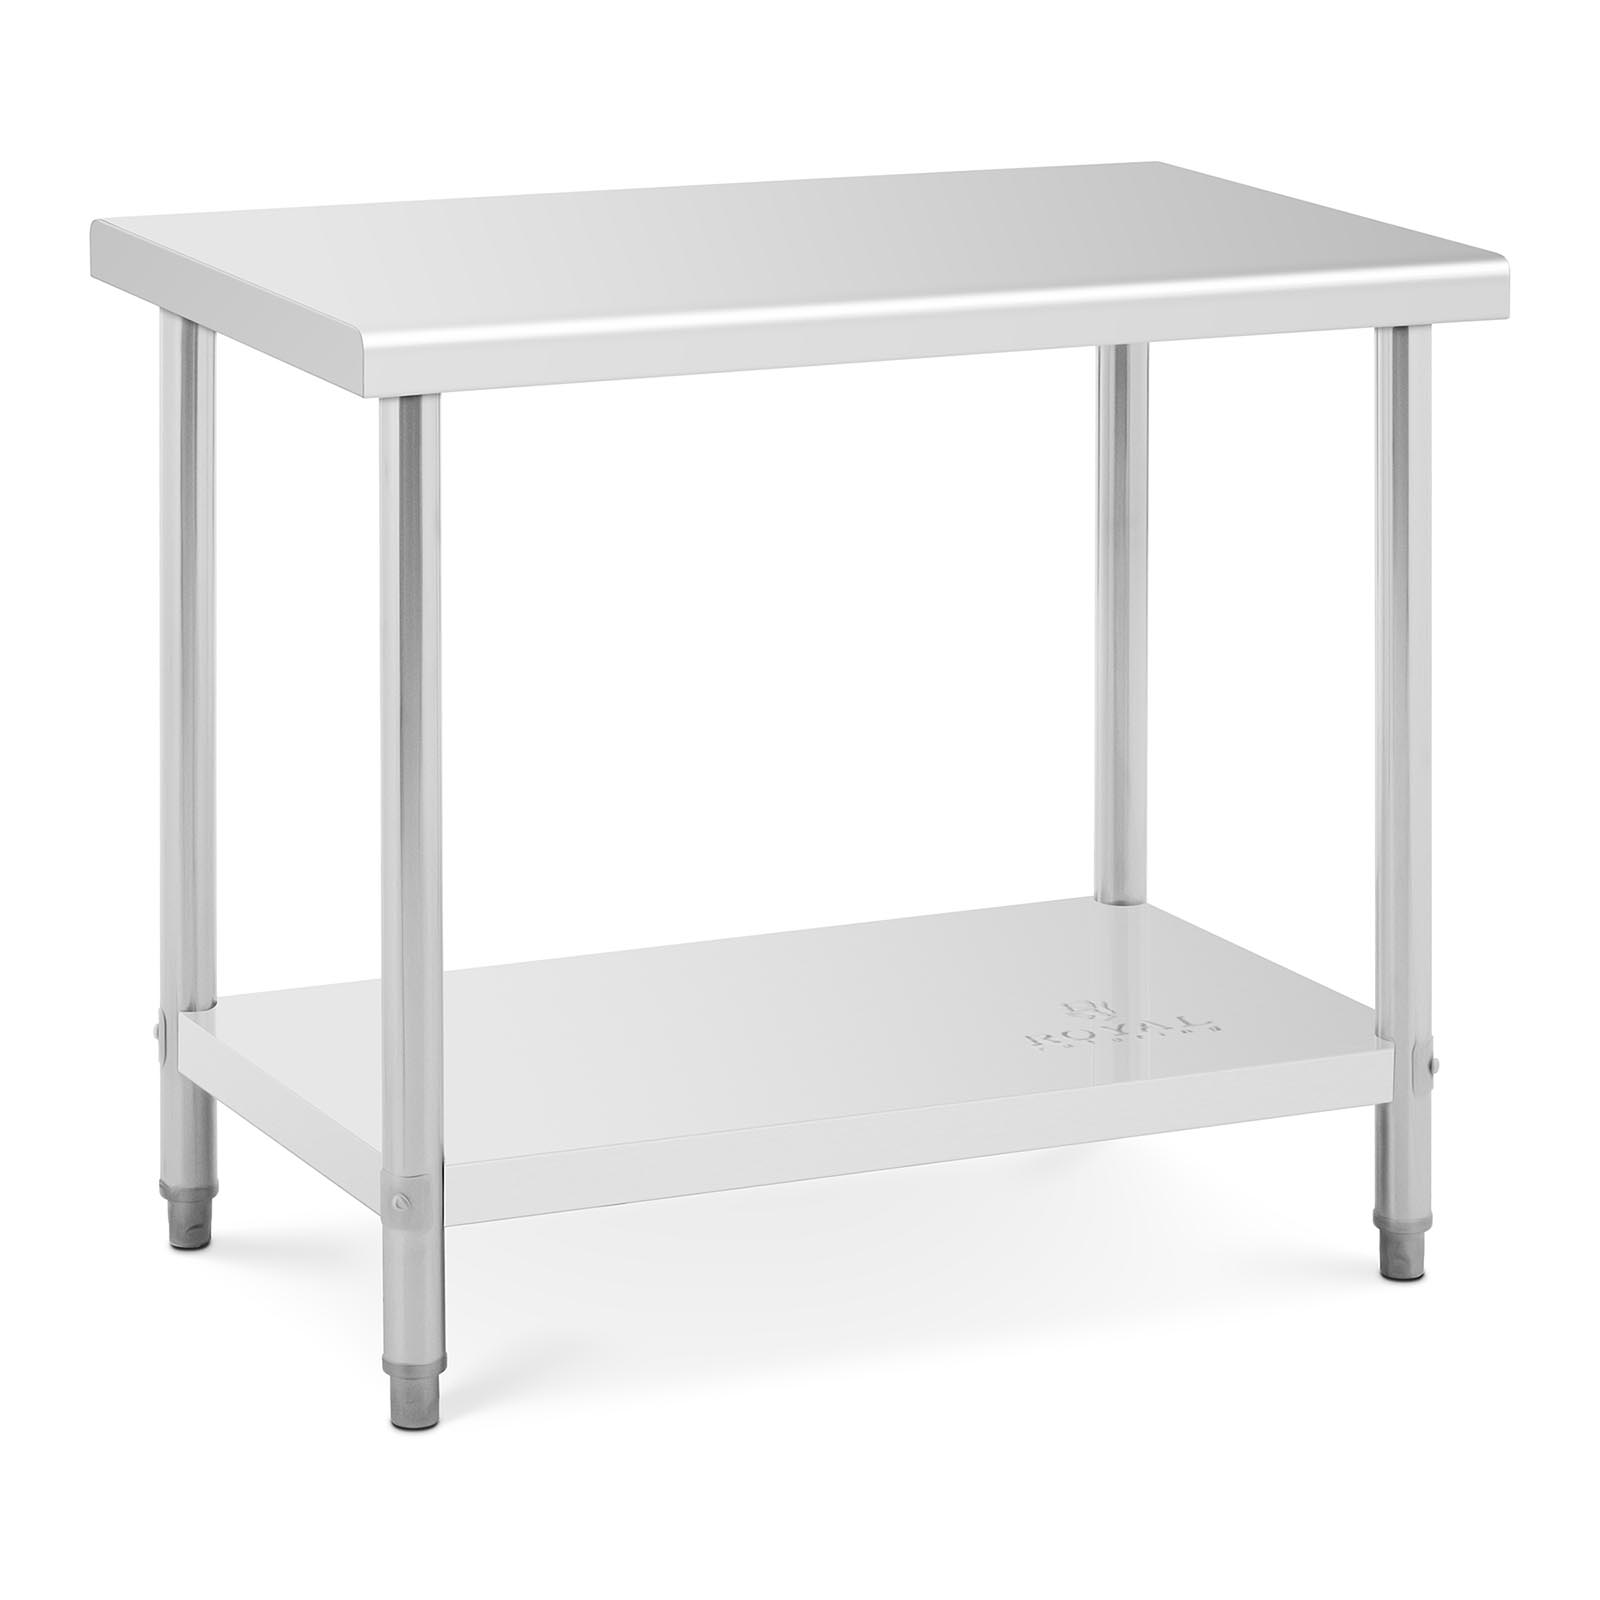 Commercial Stainless Steel Catering Work Table Kitchen ...